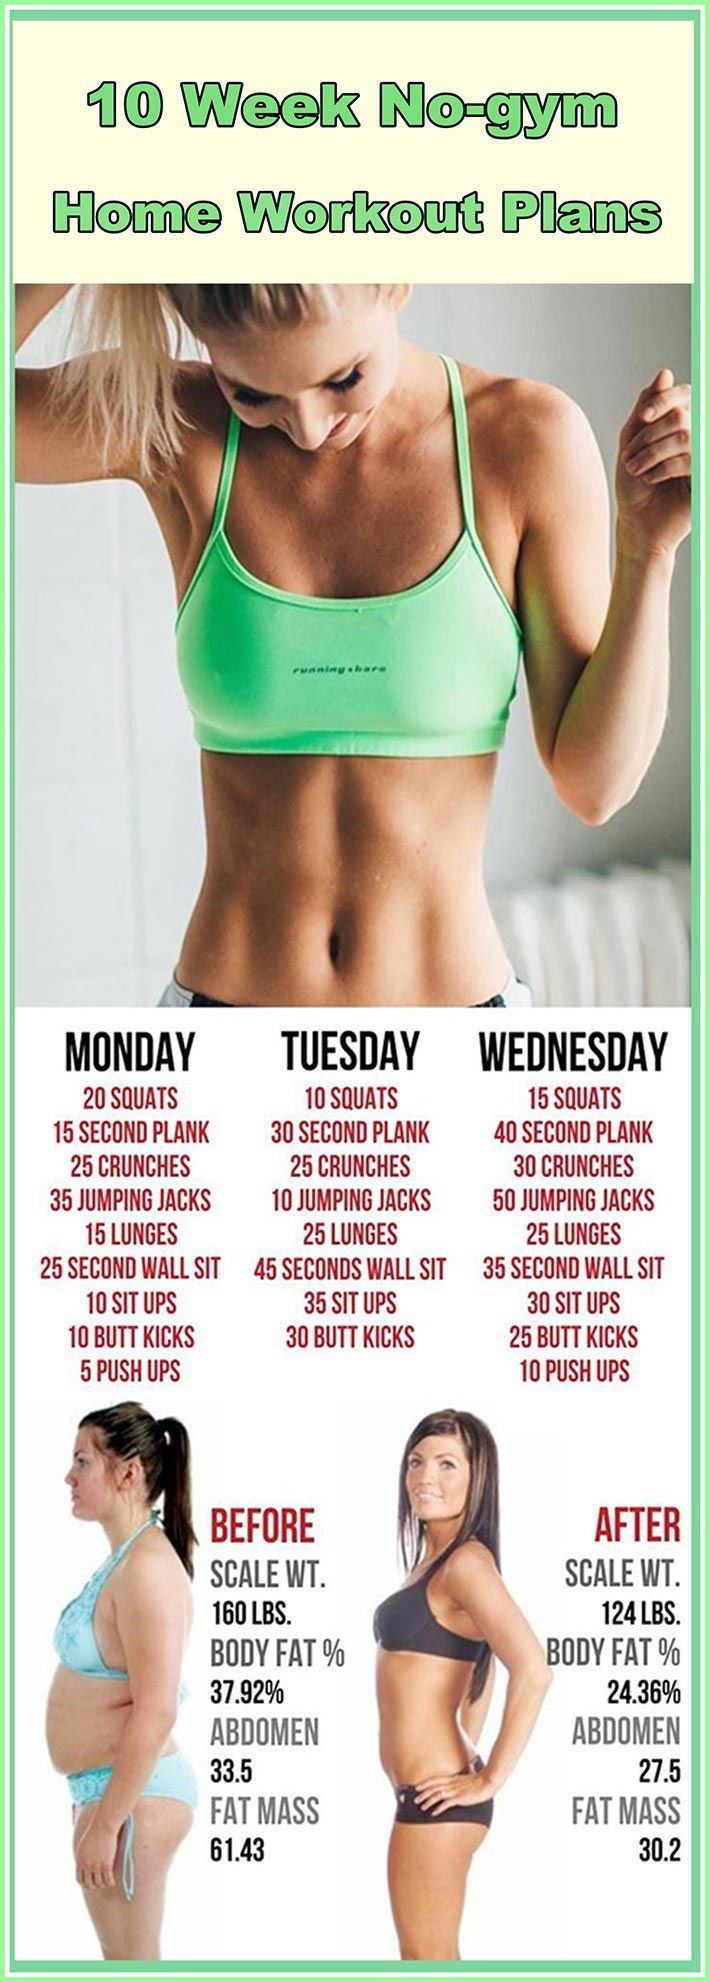 We got some new workouts for you. If you are one of those that want to lose weight or gain muscle you should definitely check the plans. You don't need equipment to do these exercises; just an hour daily and you'll be fit as never before. 10 WEEK HOME WORKOUT PLANS Workout plans instructions: You should repeat this cir